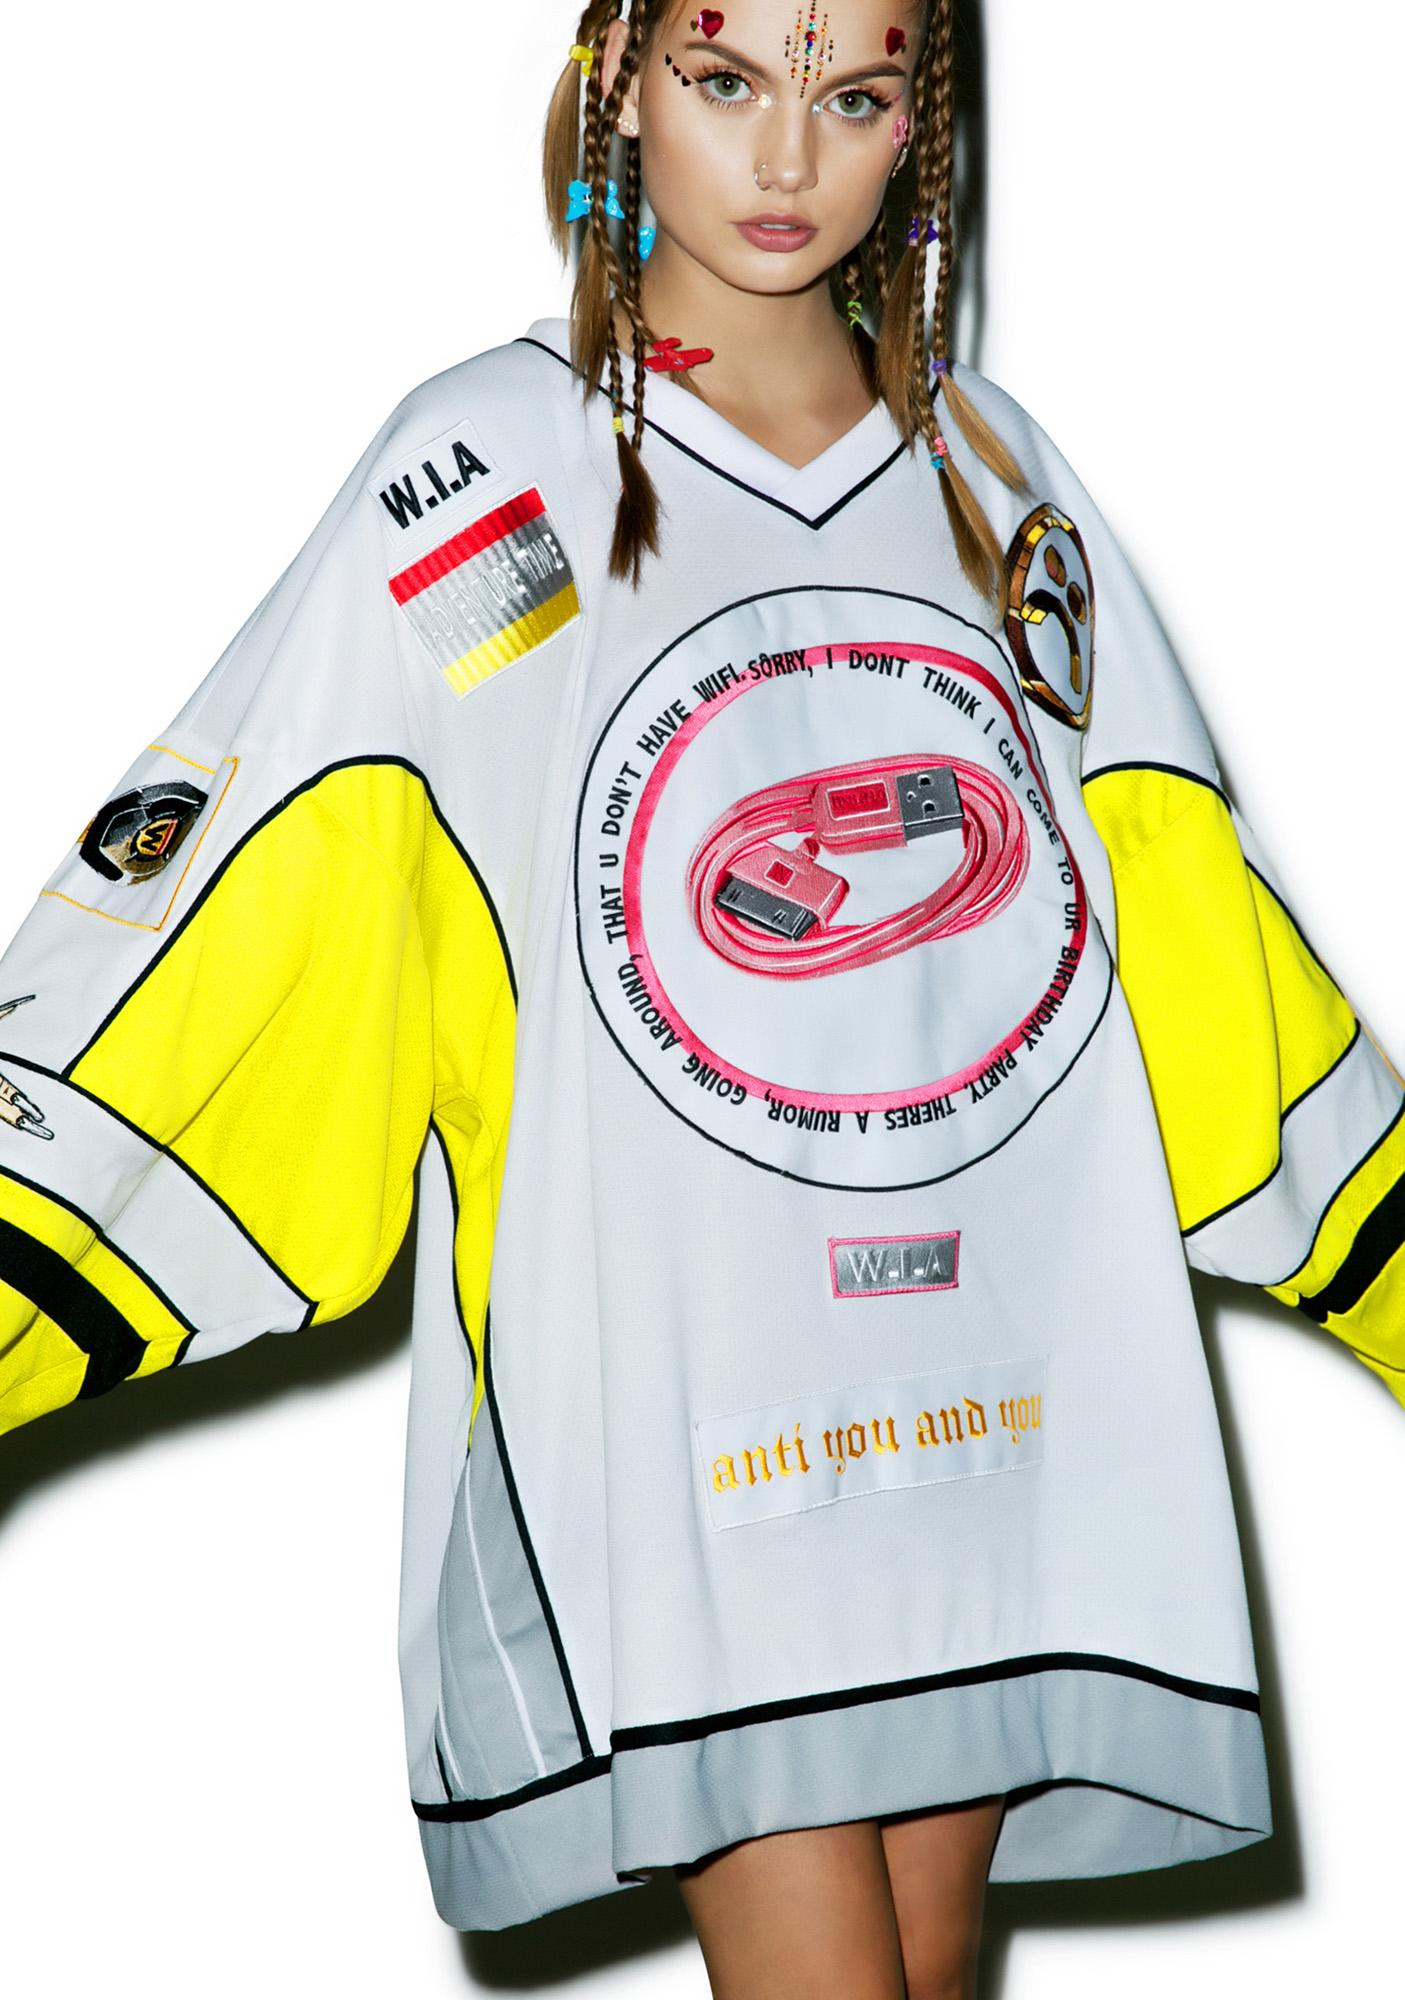 W.I.A Limited Edition USB Patch Jersey